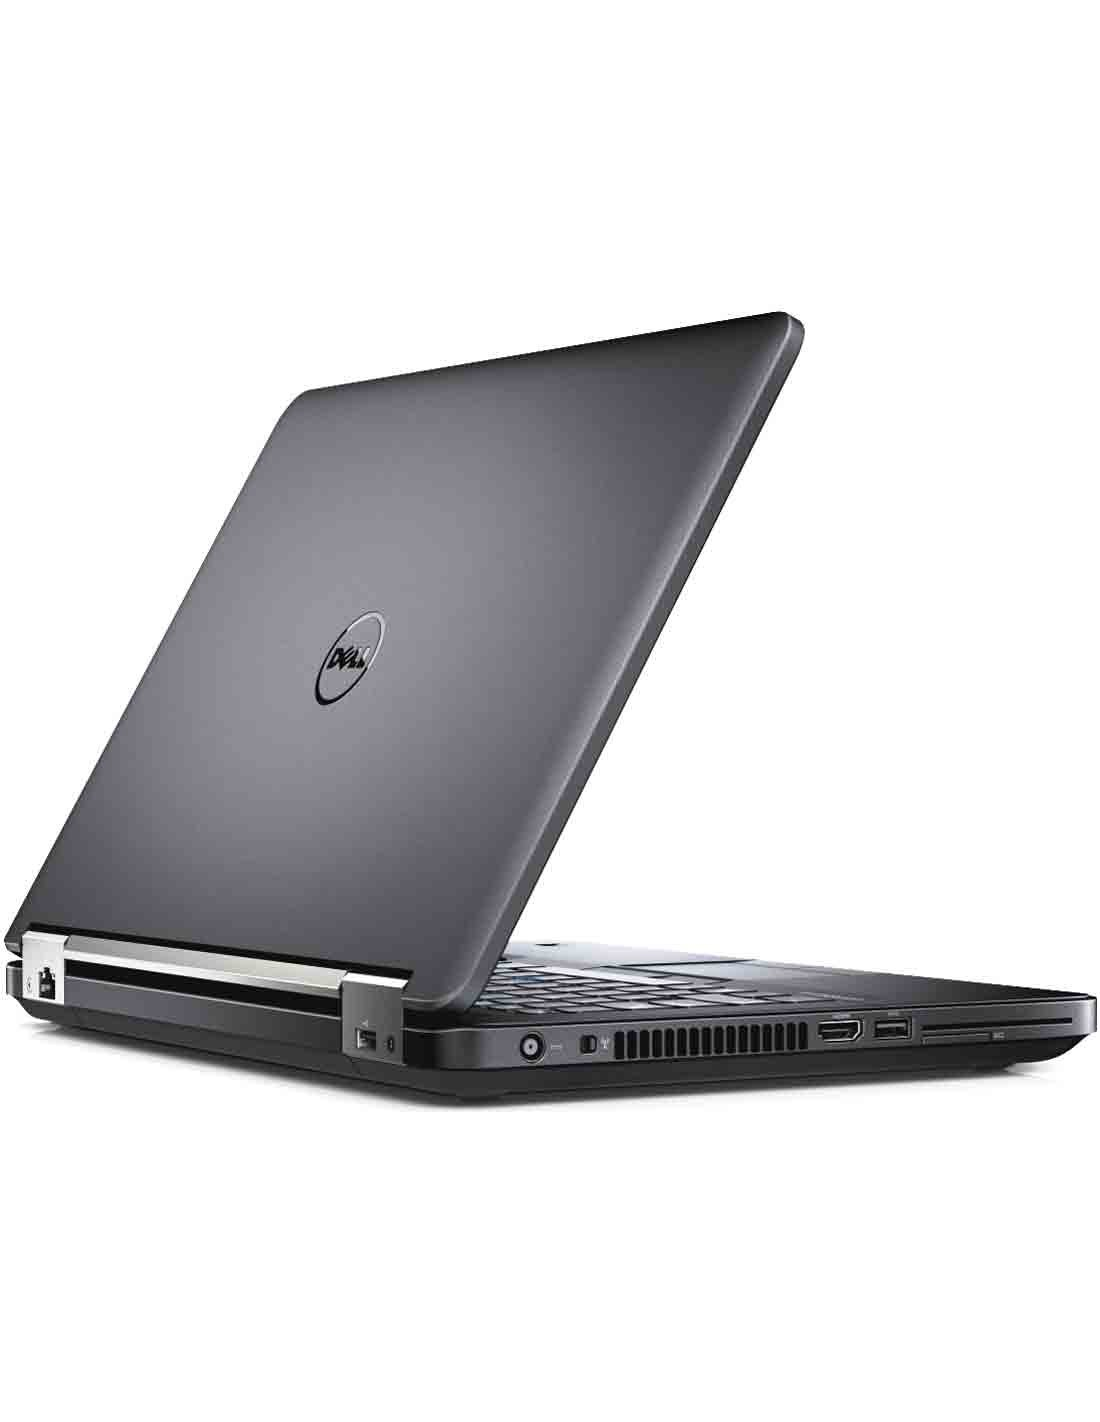 Dell Latitude E5470 Images and Pictures